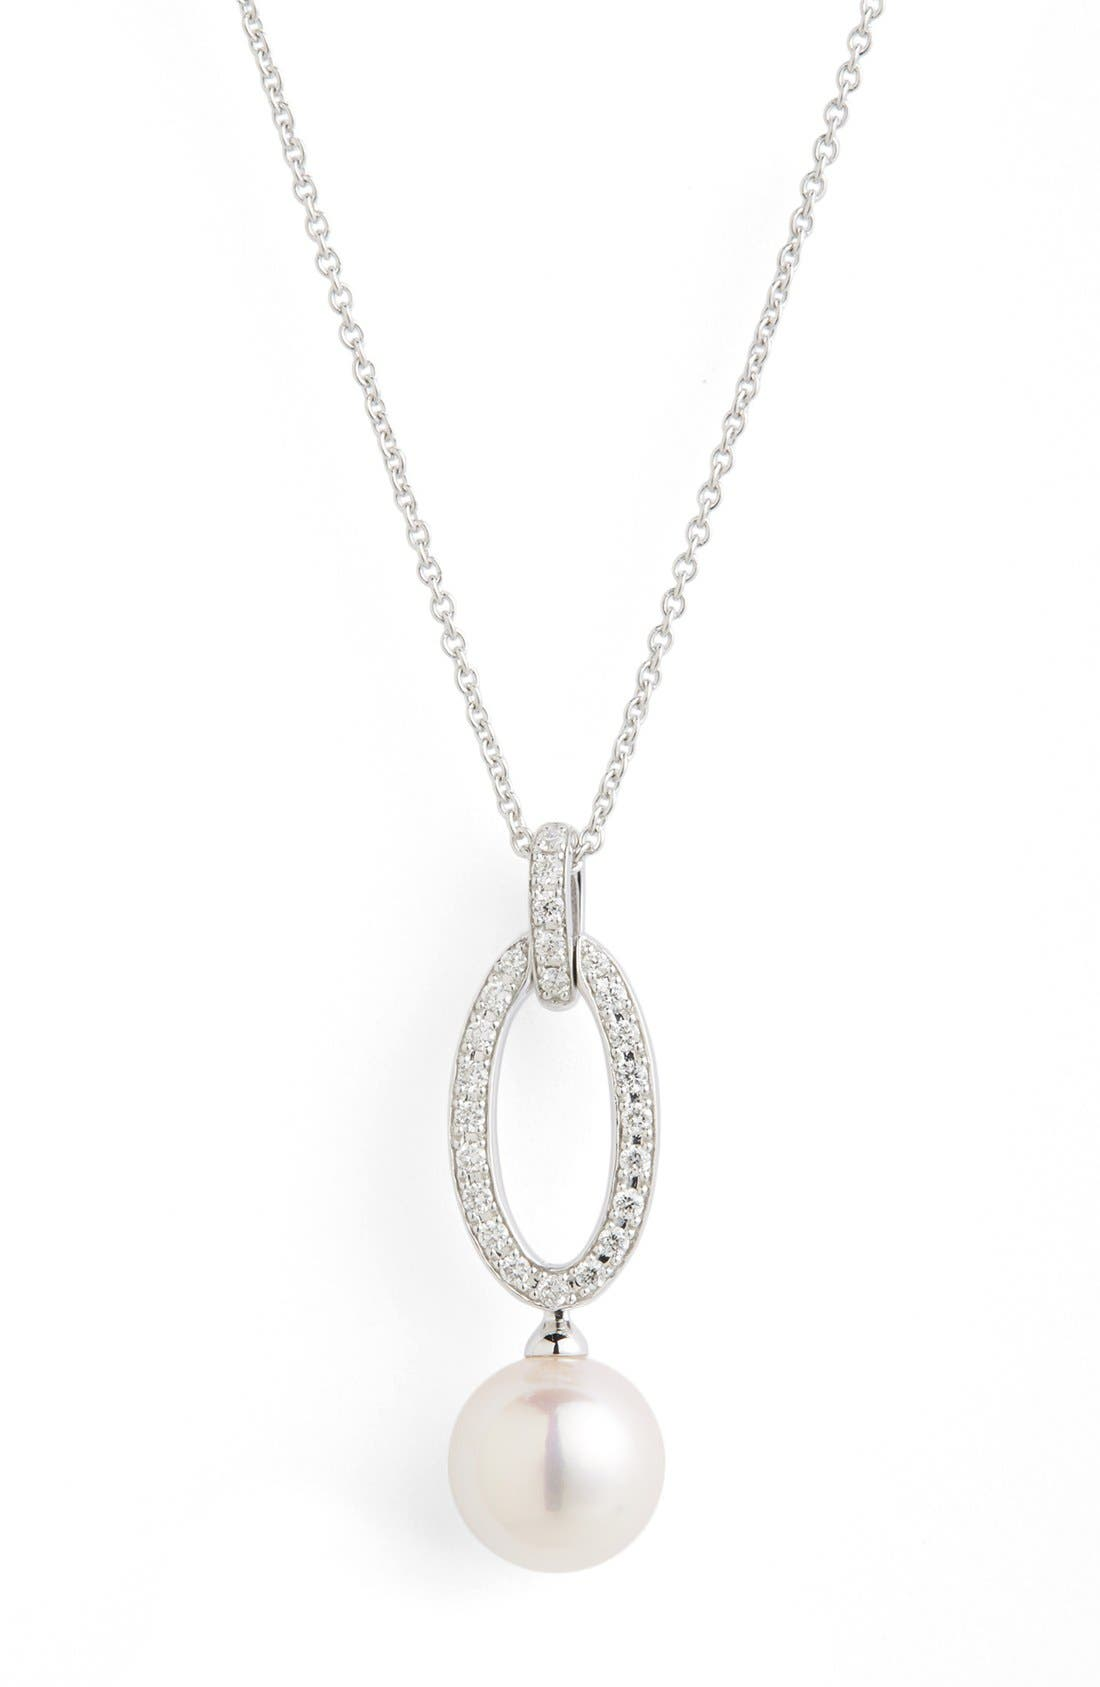 Diamond & Akoya Cultured Pearl Pendant Necklace,                             Alternate thumbnail 2, color,                             White Gold